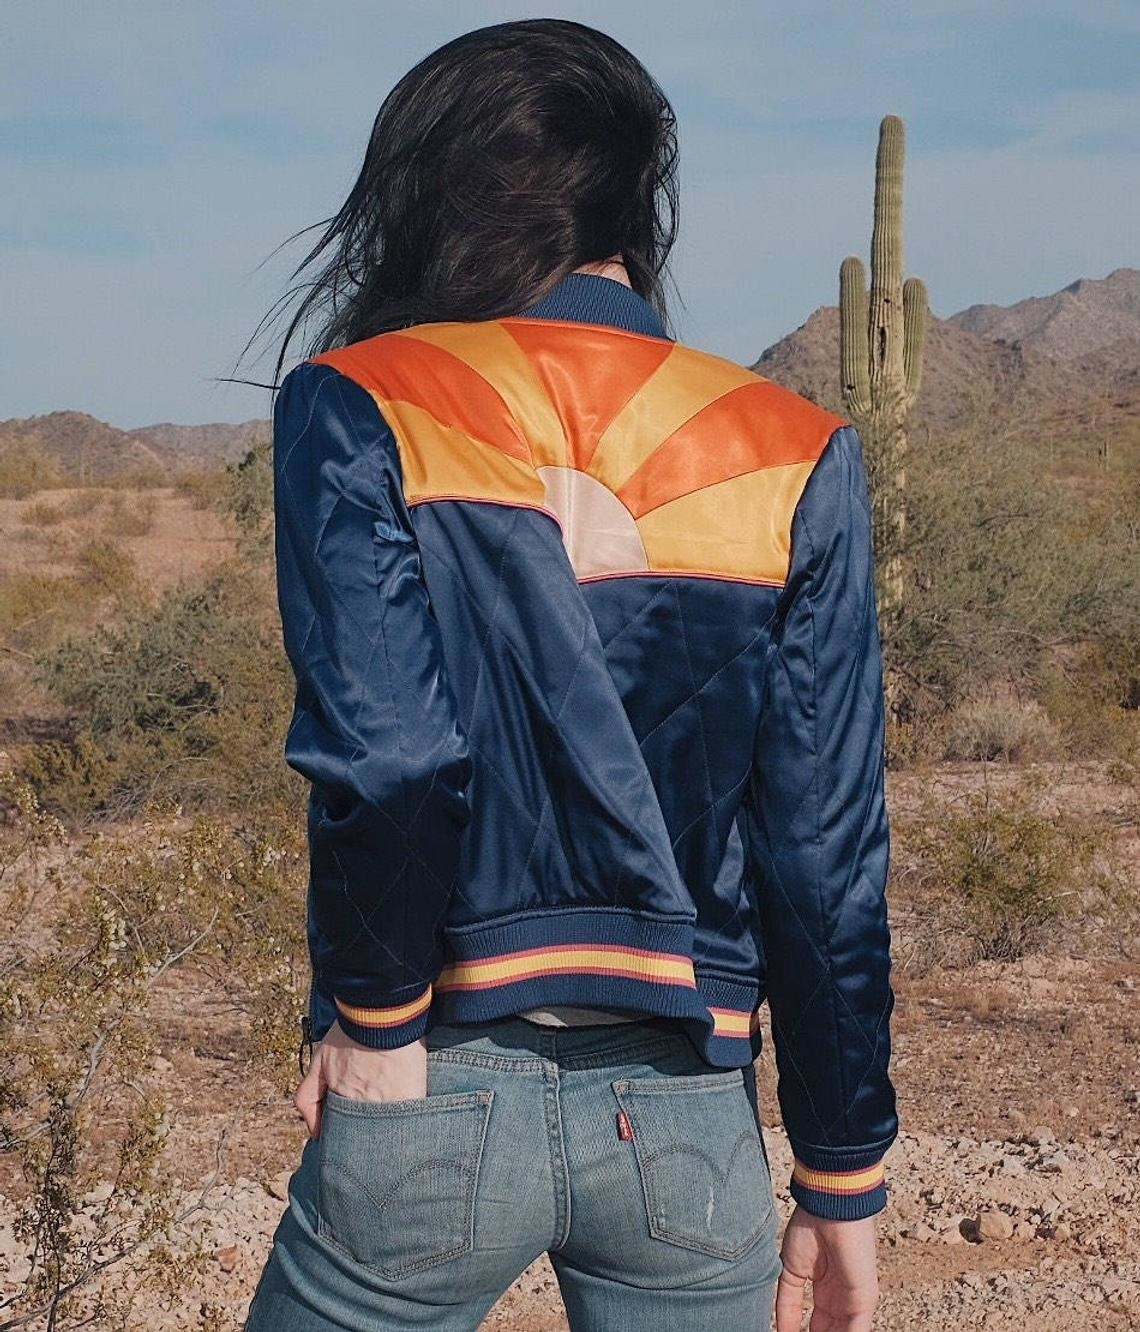 A model wearing the bomber jacket with jeans in the desert